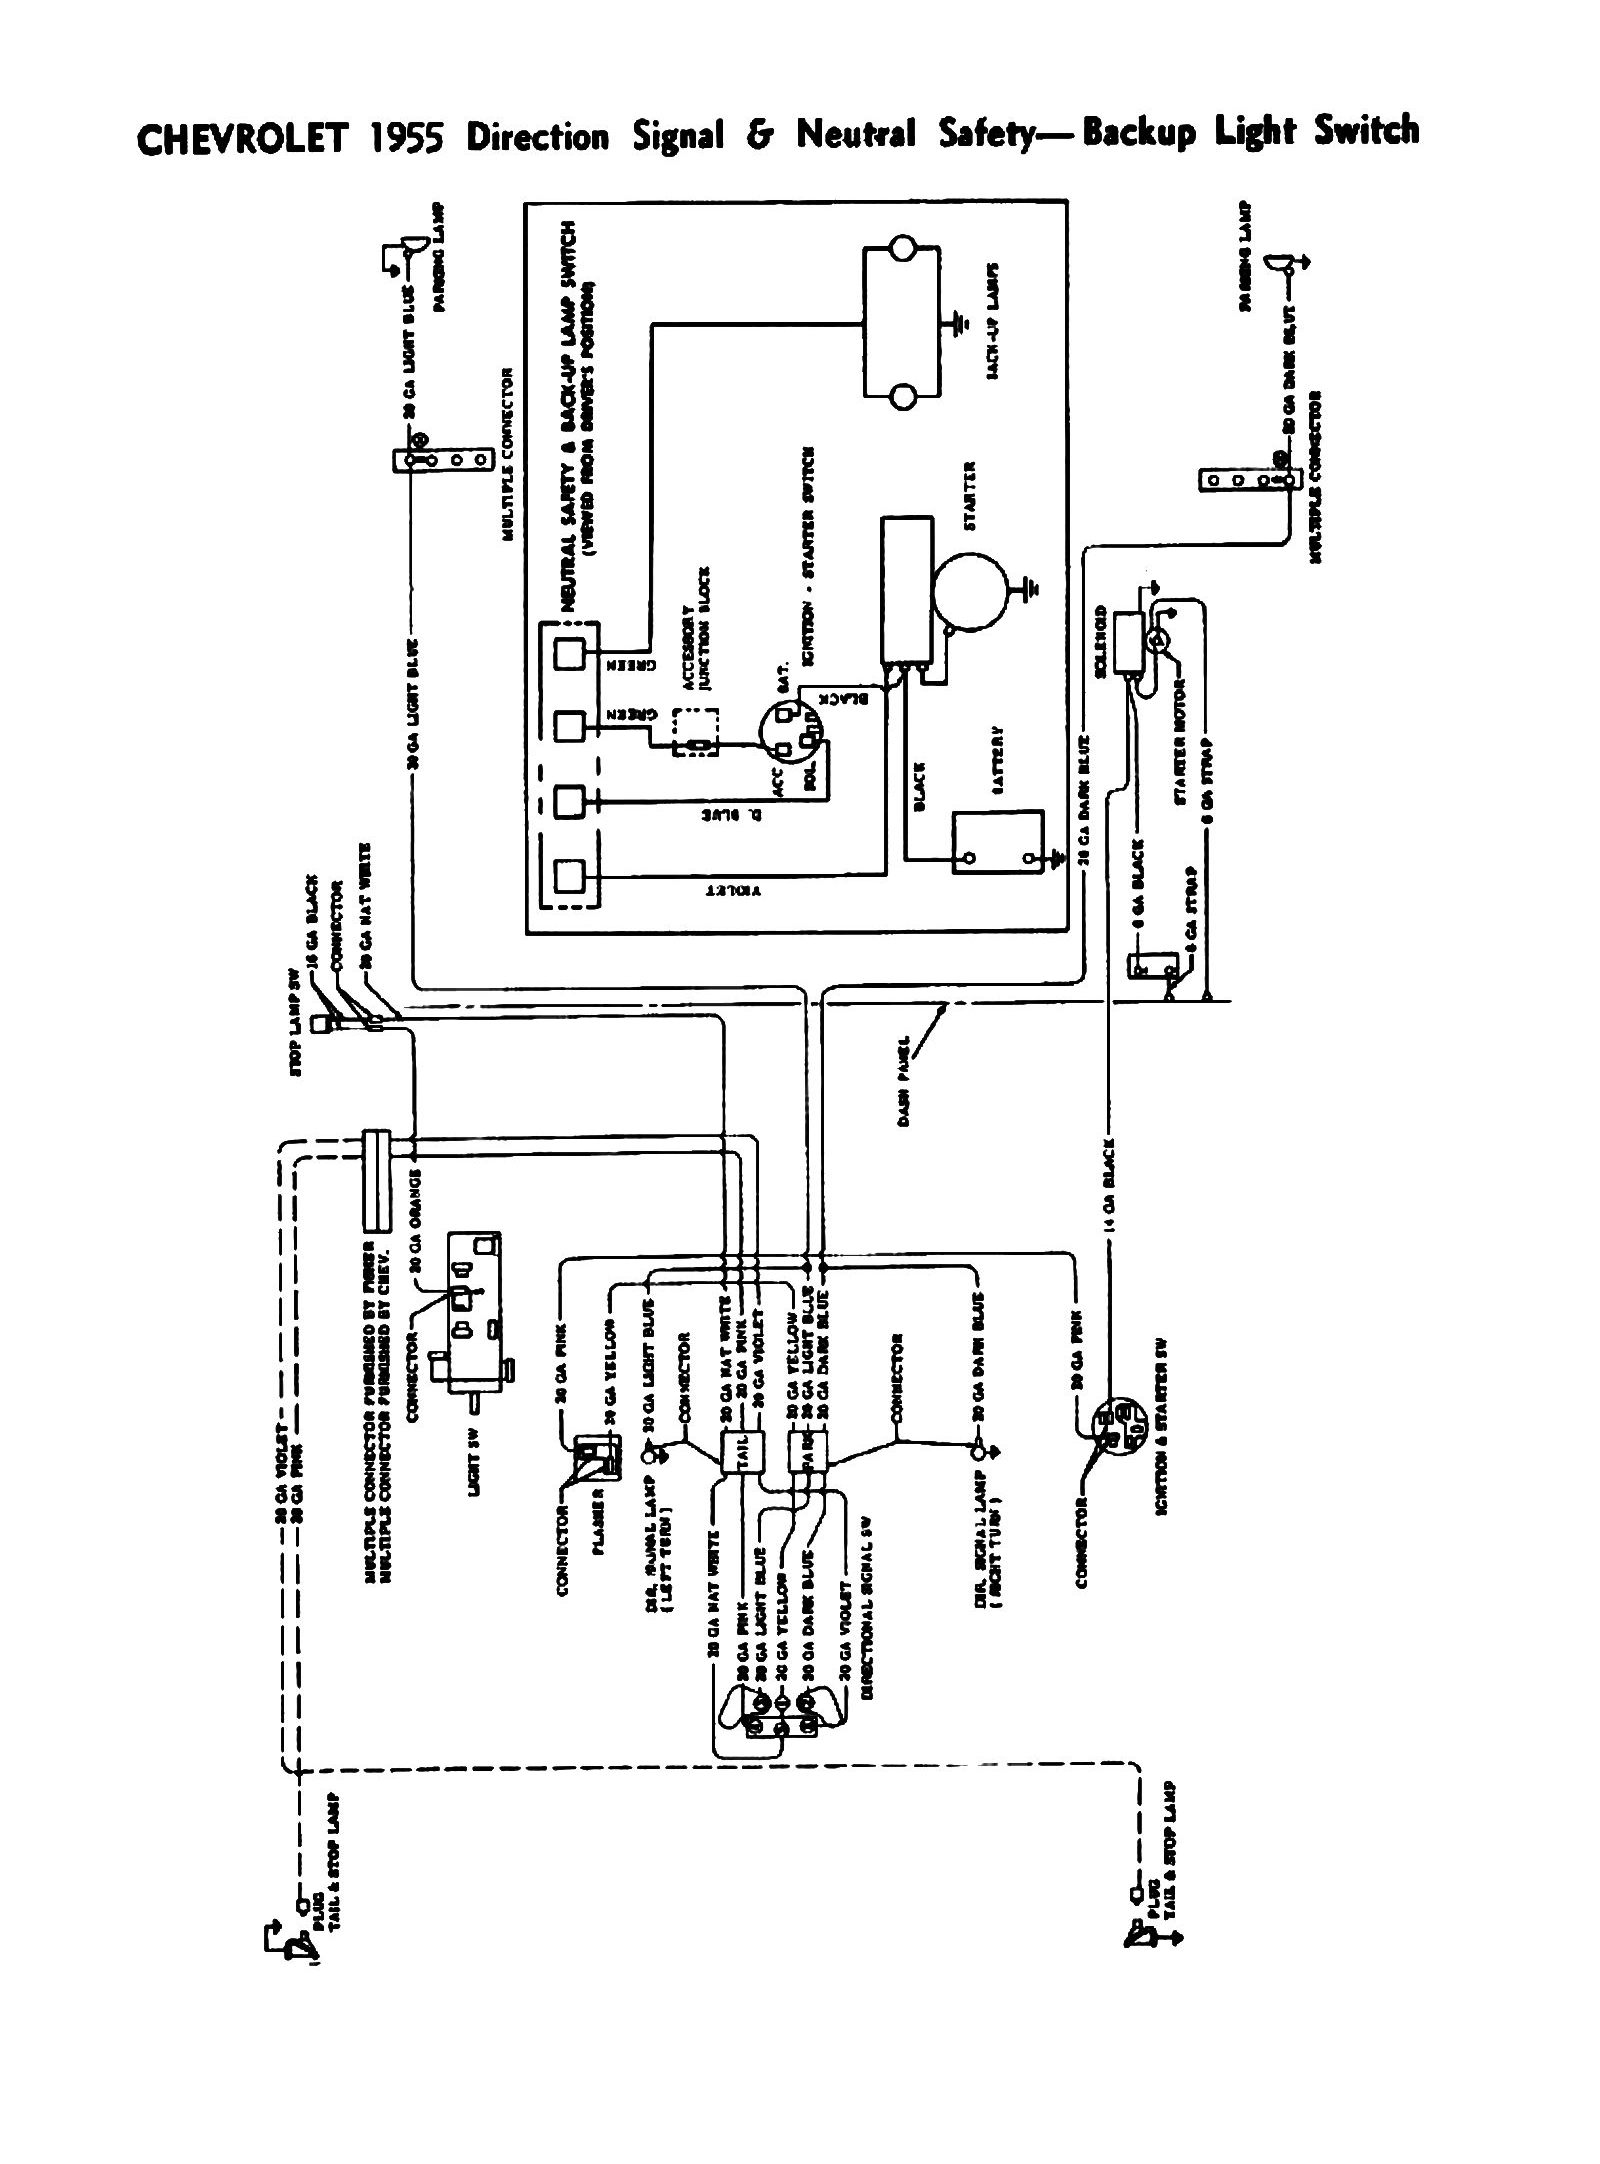 1955 chevy truck wiring wiring data diagram1955 chevy overdrive wiring diagram electronic schematics collections 1955 chevy truck wiring harness kit 1955 chevy truck wiring